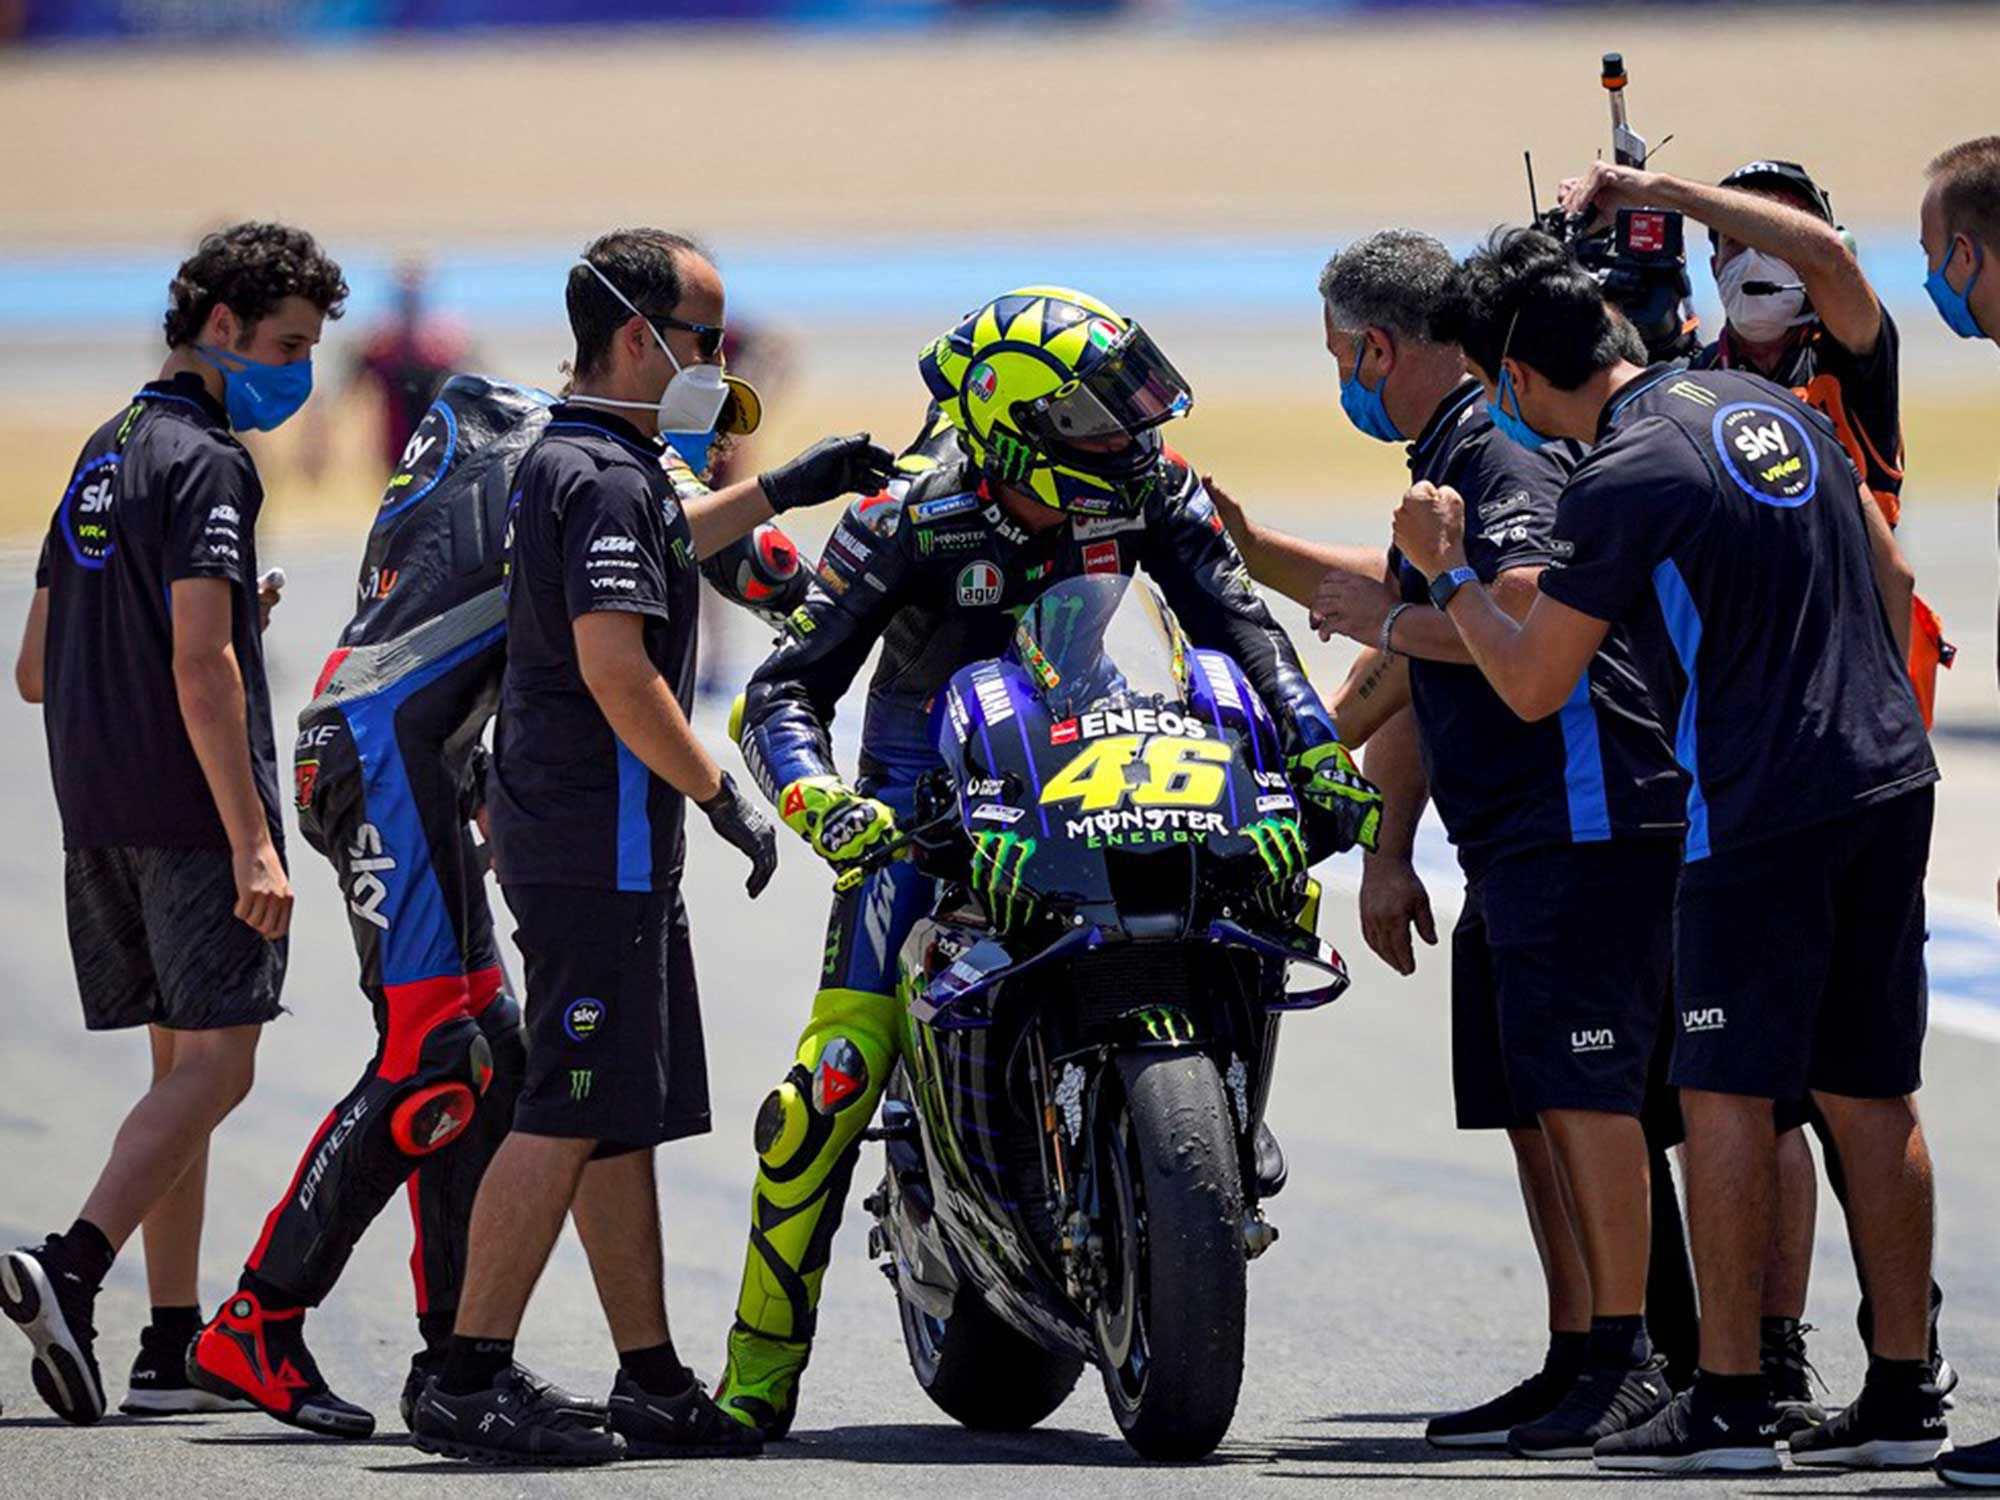 Rossi credits his Sky Racing Team VR46 Moto2 and Moto3 racers for keeping him young at practices. They also had a successful day on the Jerez track.